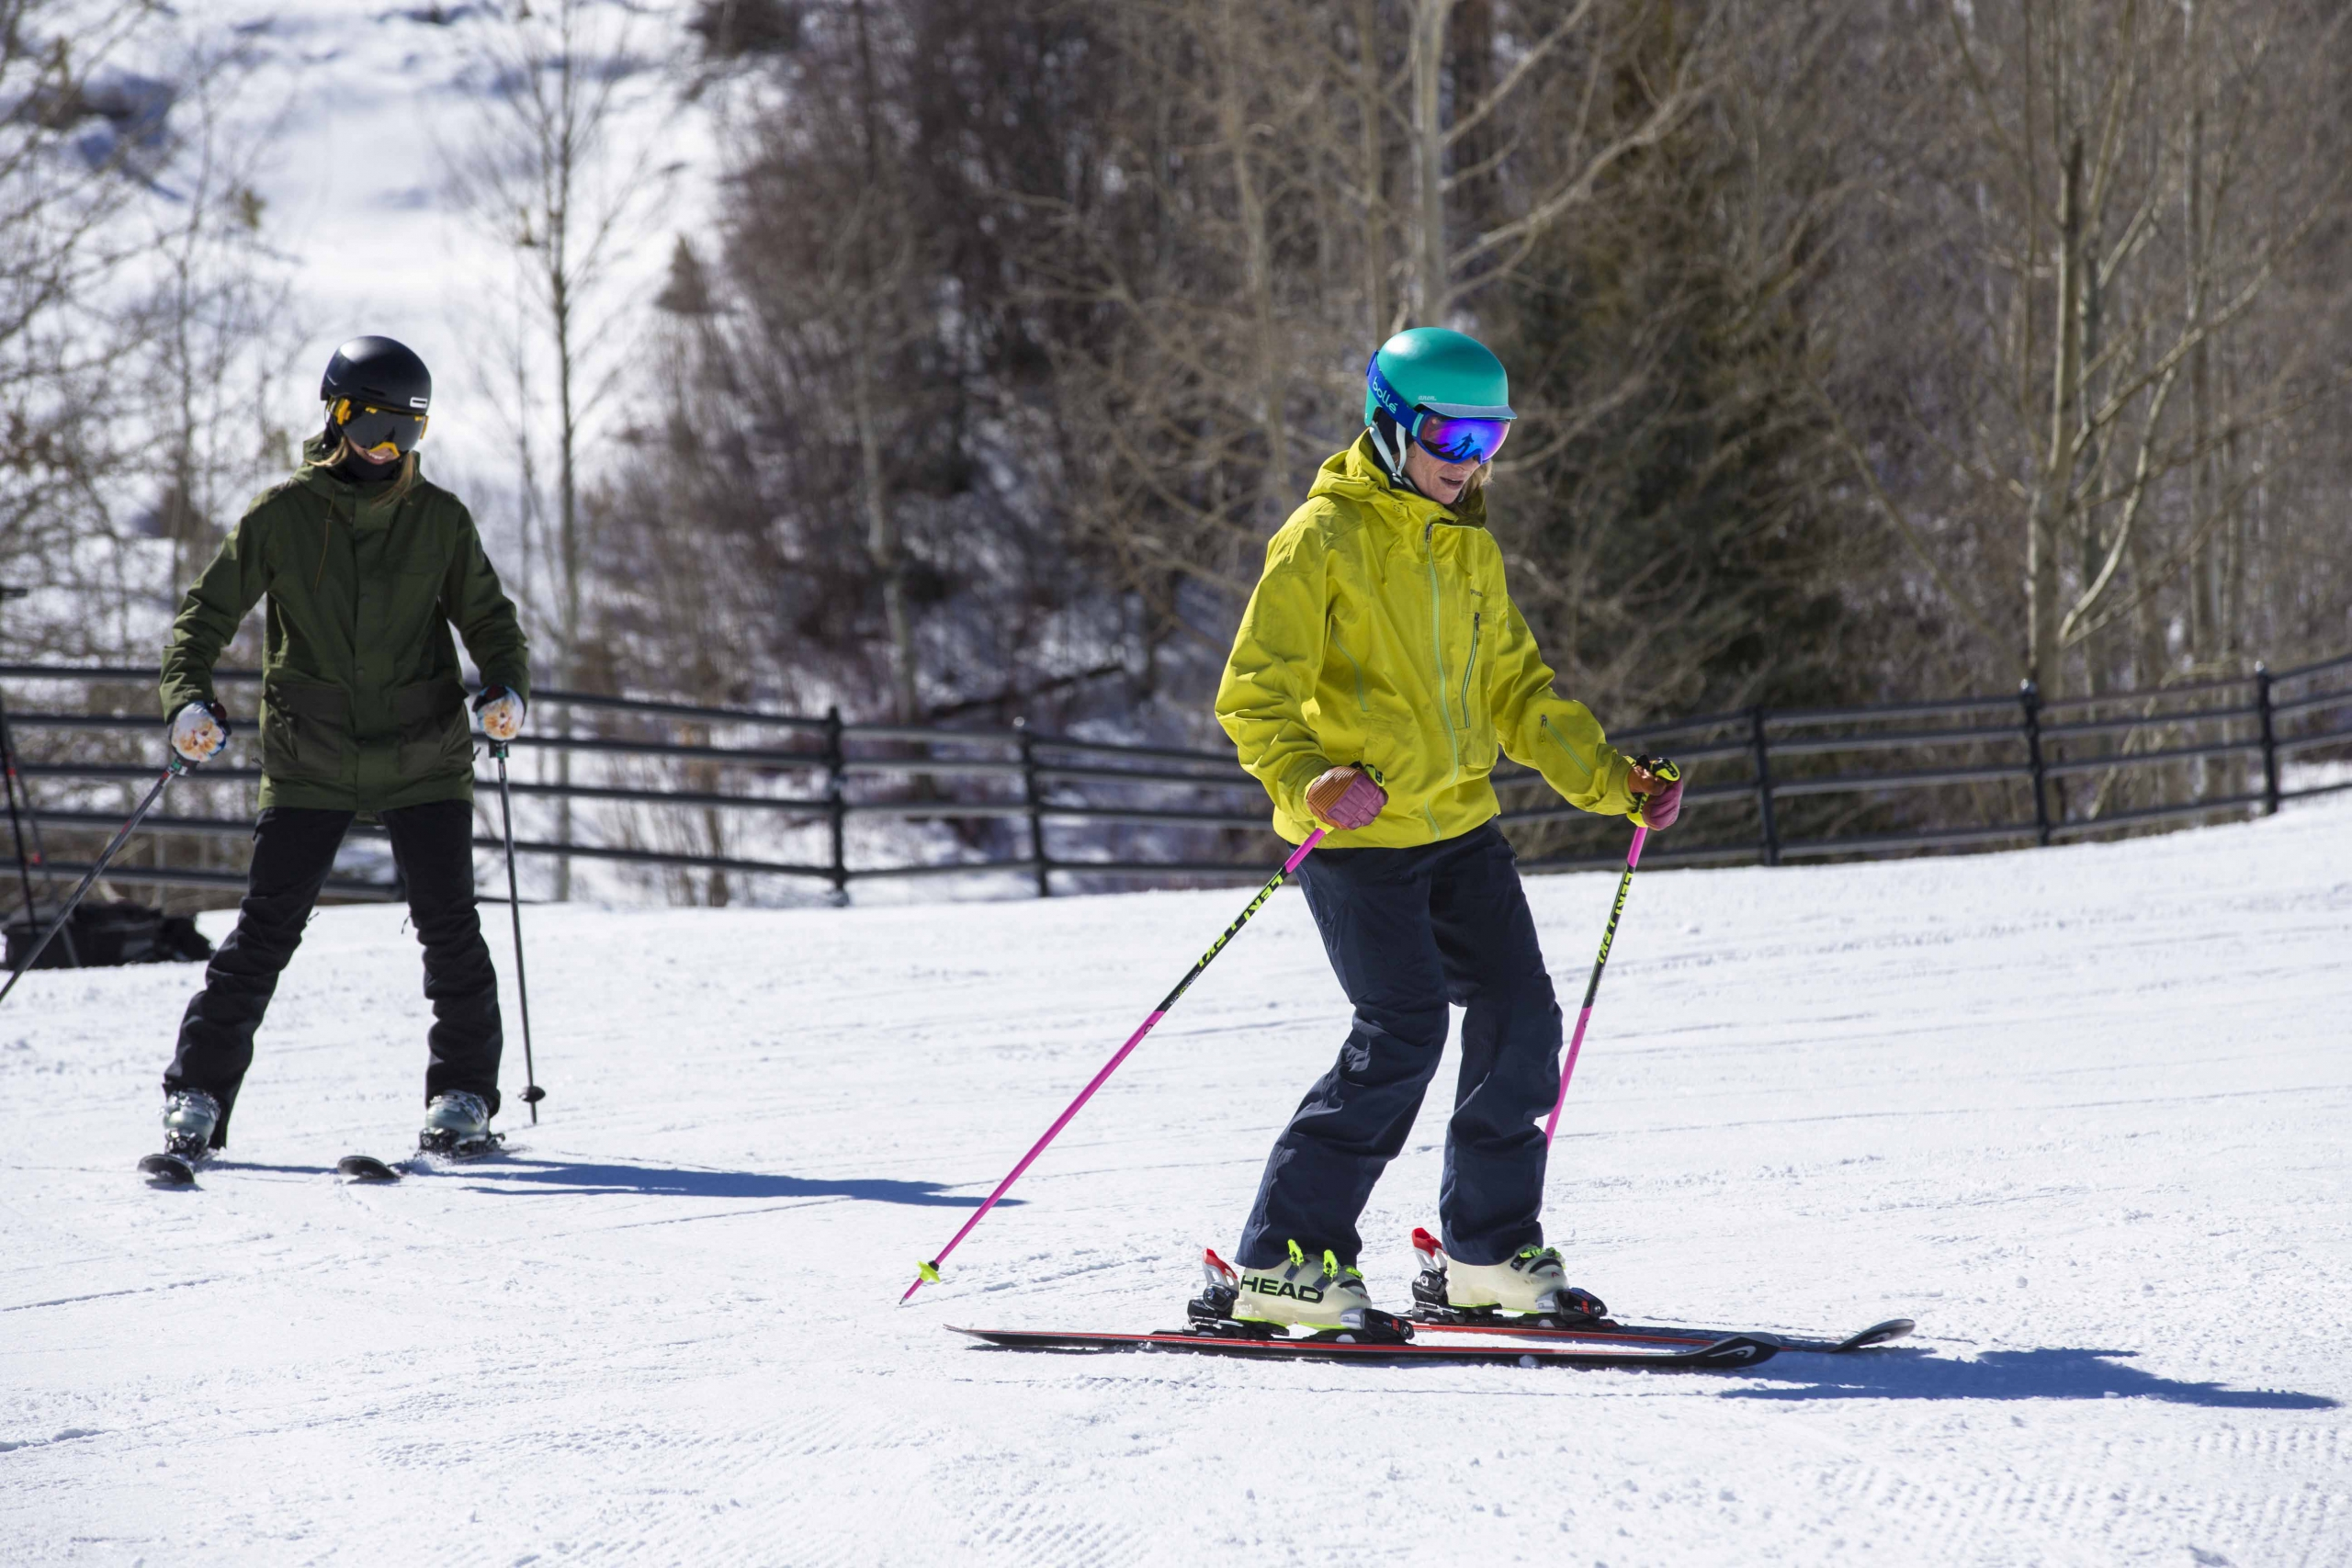 PSIA Alpine Team member Robin Barnes teaches a beginner ski lesson.